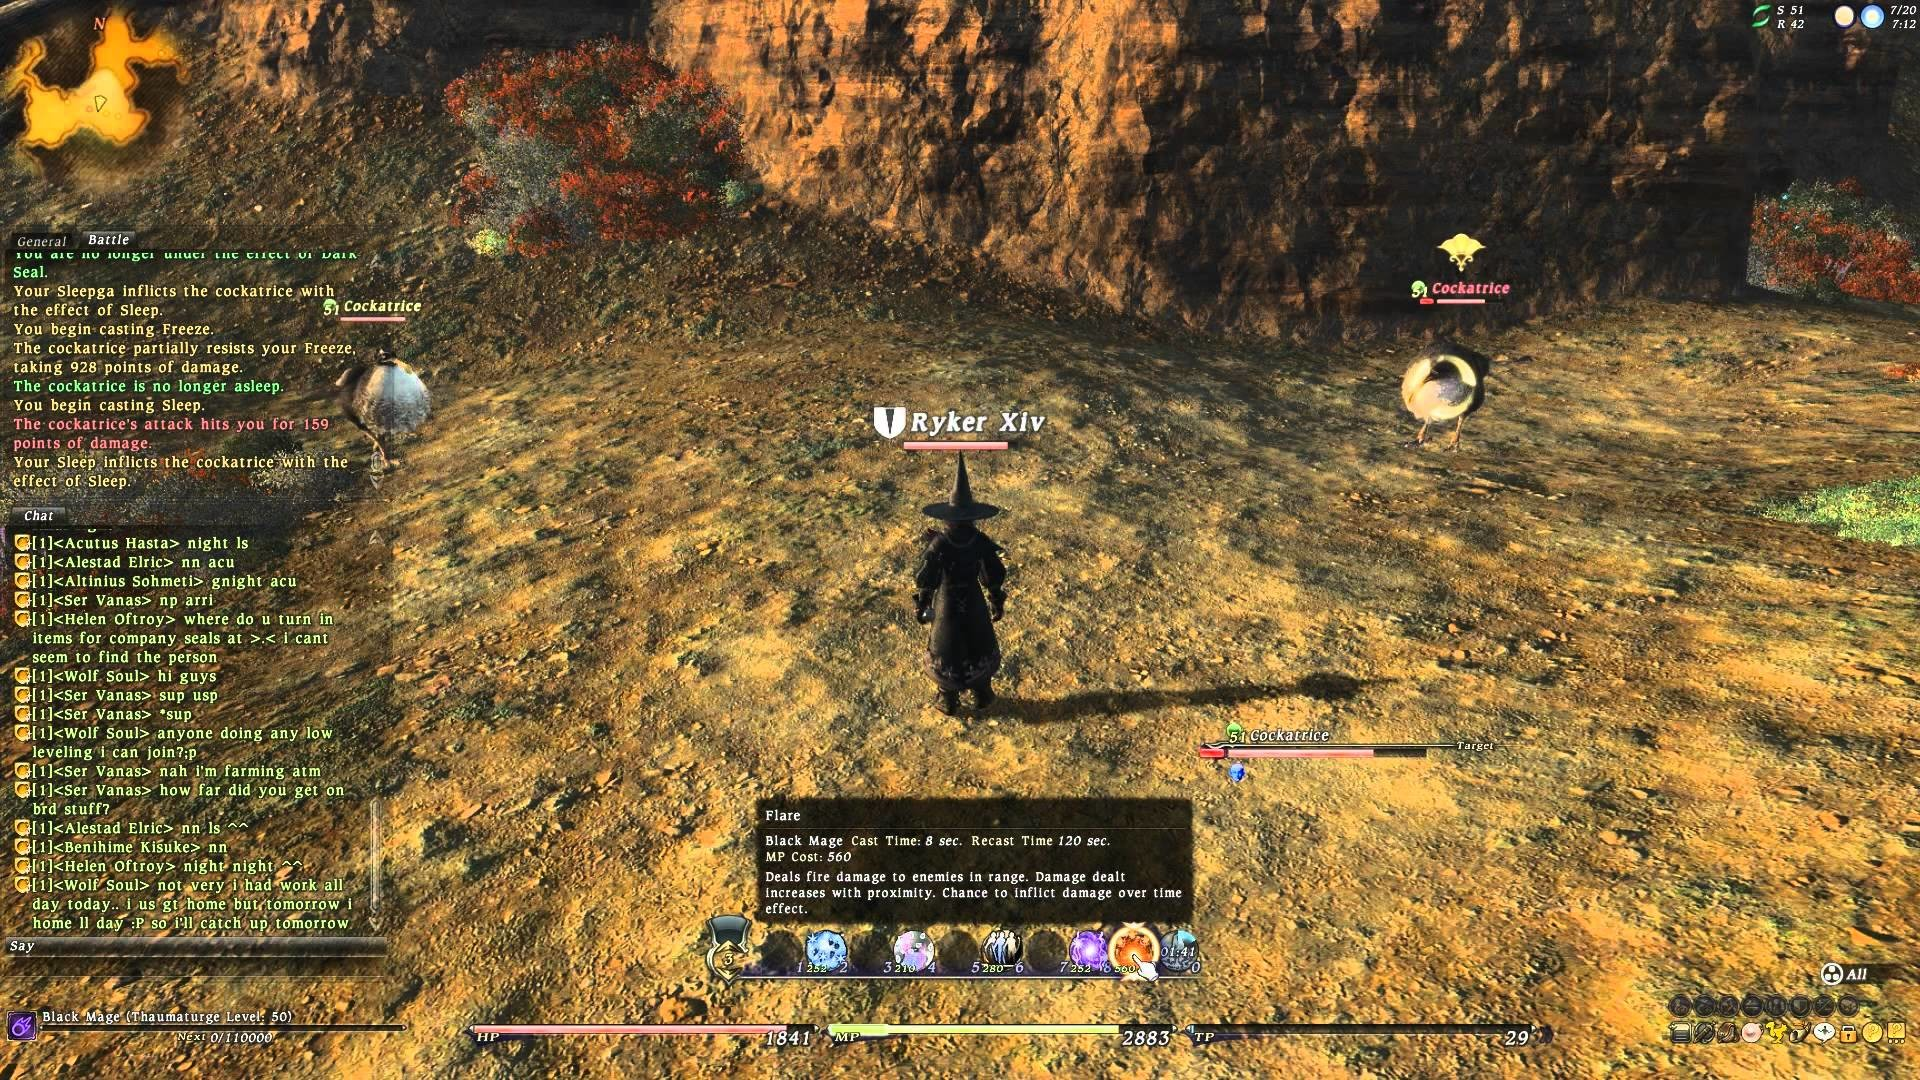 [OUTDATED: PRE 2.0 RELEASE] Final Fantasy XIV – Black Mage Artifact gear  and abilities (patch 1.21)